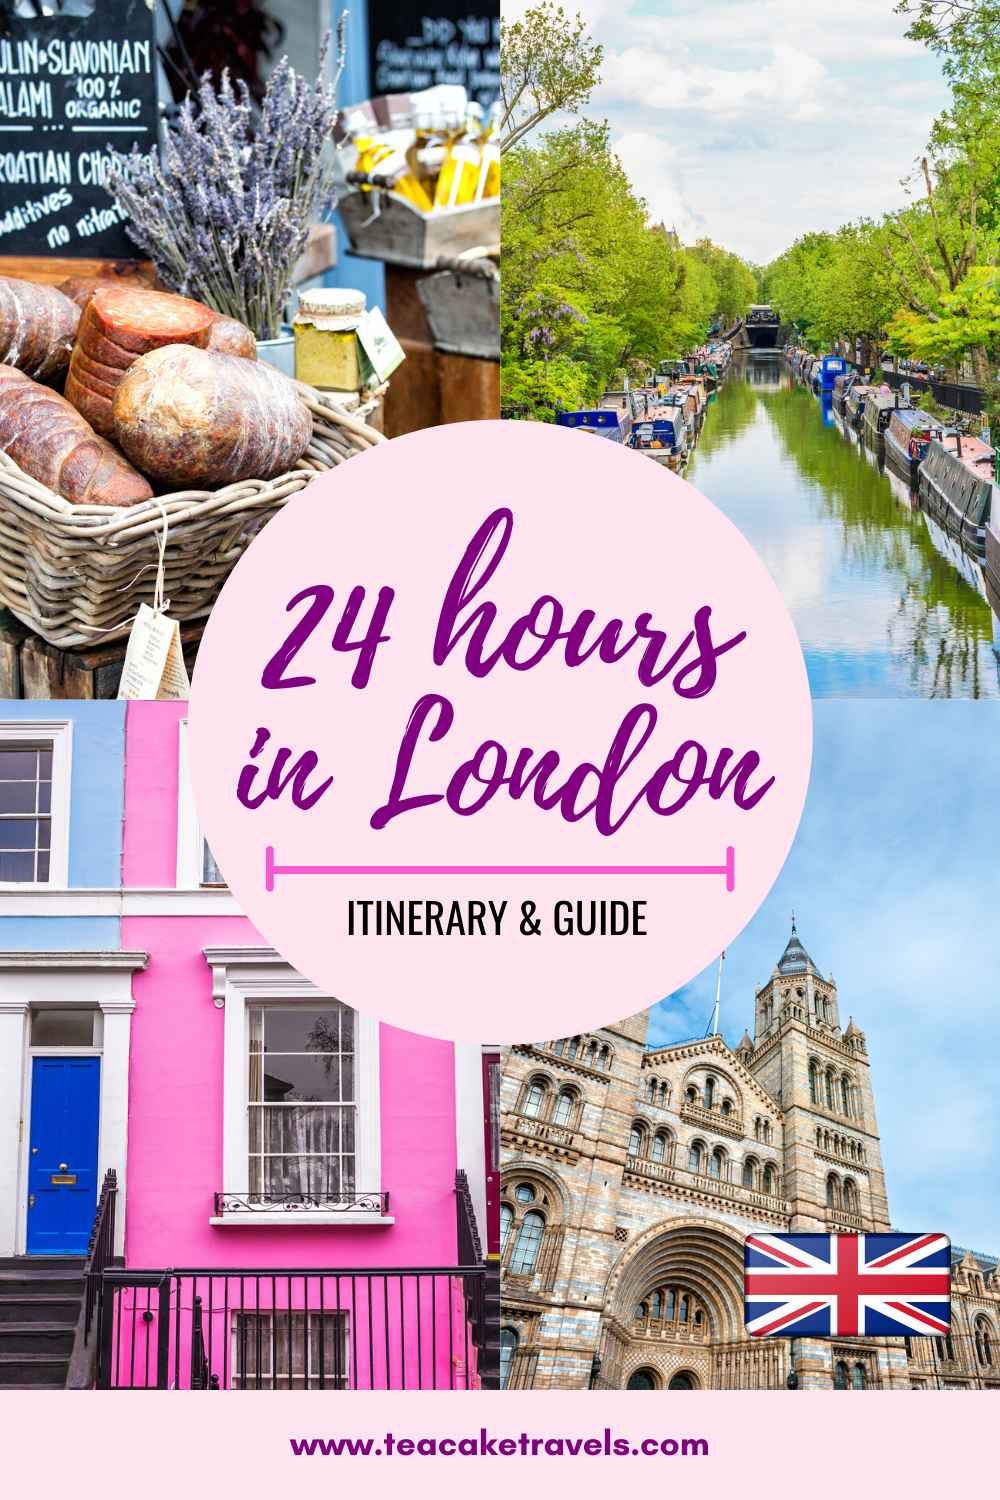 24 hours in London Itinerary and Guide